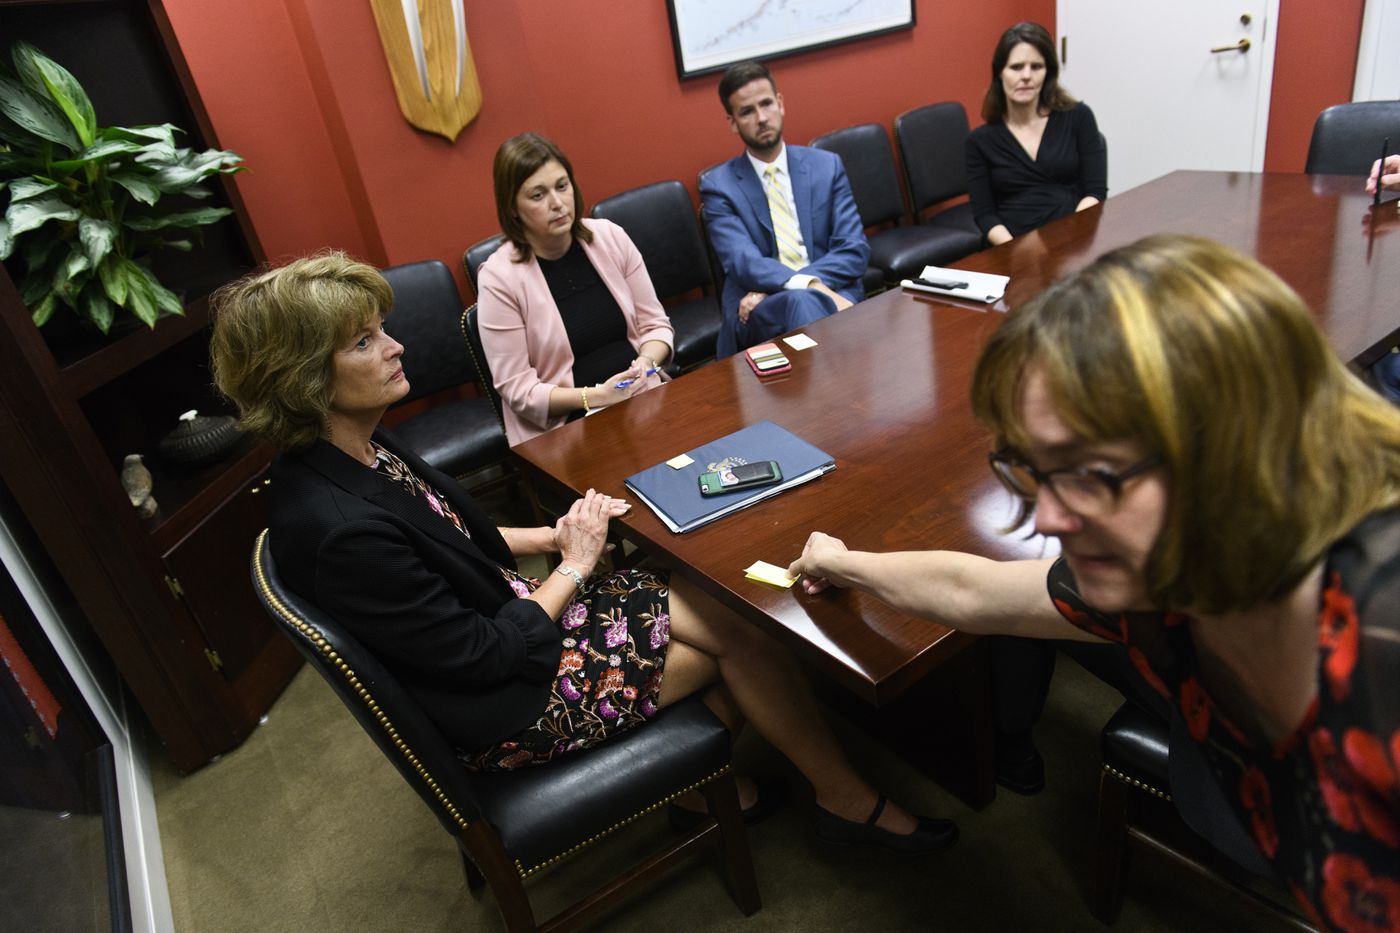 Kristen Daimler-Nothdurft, right, hands Sen. Lisa Murkowski a note during a meeting at her Washington office on June 18, 2019. Daimler-Nothdurft, Murkowski's scheduler, uses the notes to let her know when the next meeting is set to begin in a conference room across the hall. (Marc Lester / ADN)